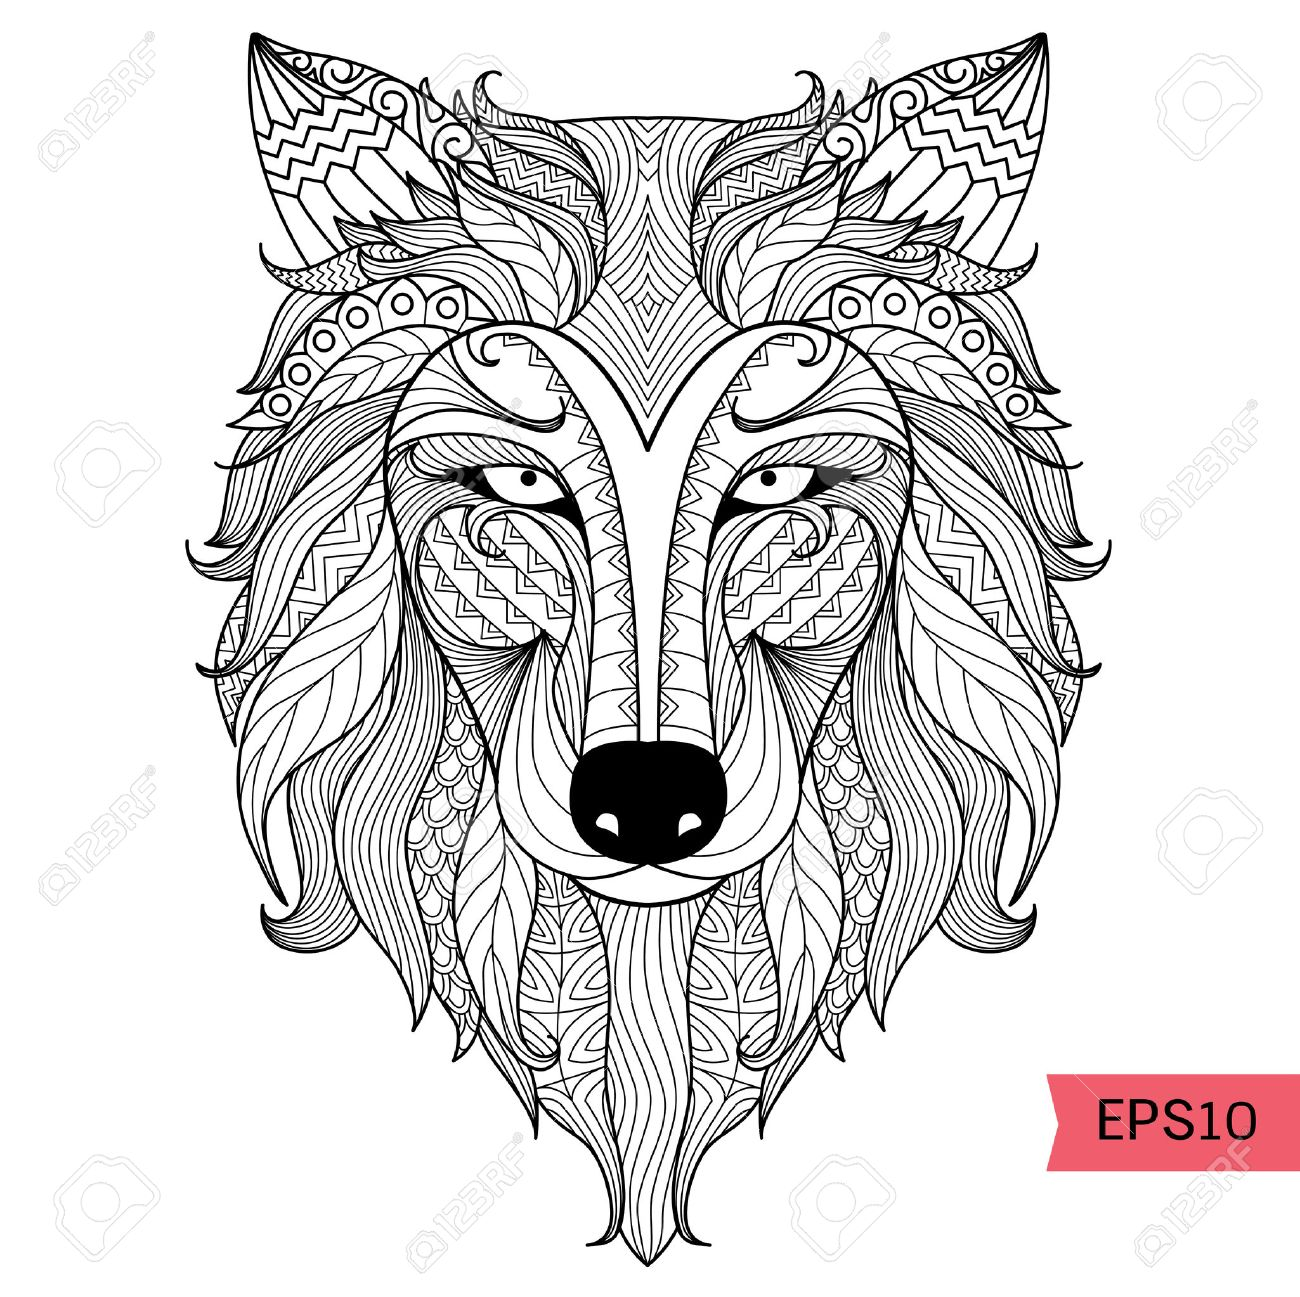 Detalle Lobo Zentangle Para Colorear Página, Tatuaje, Camiseta ...